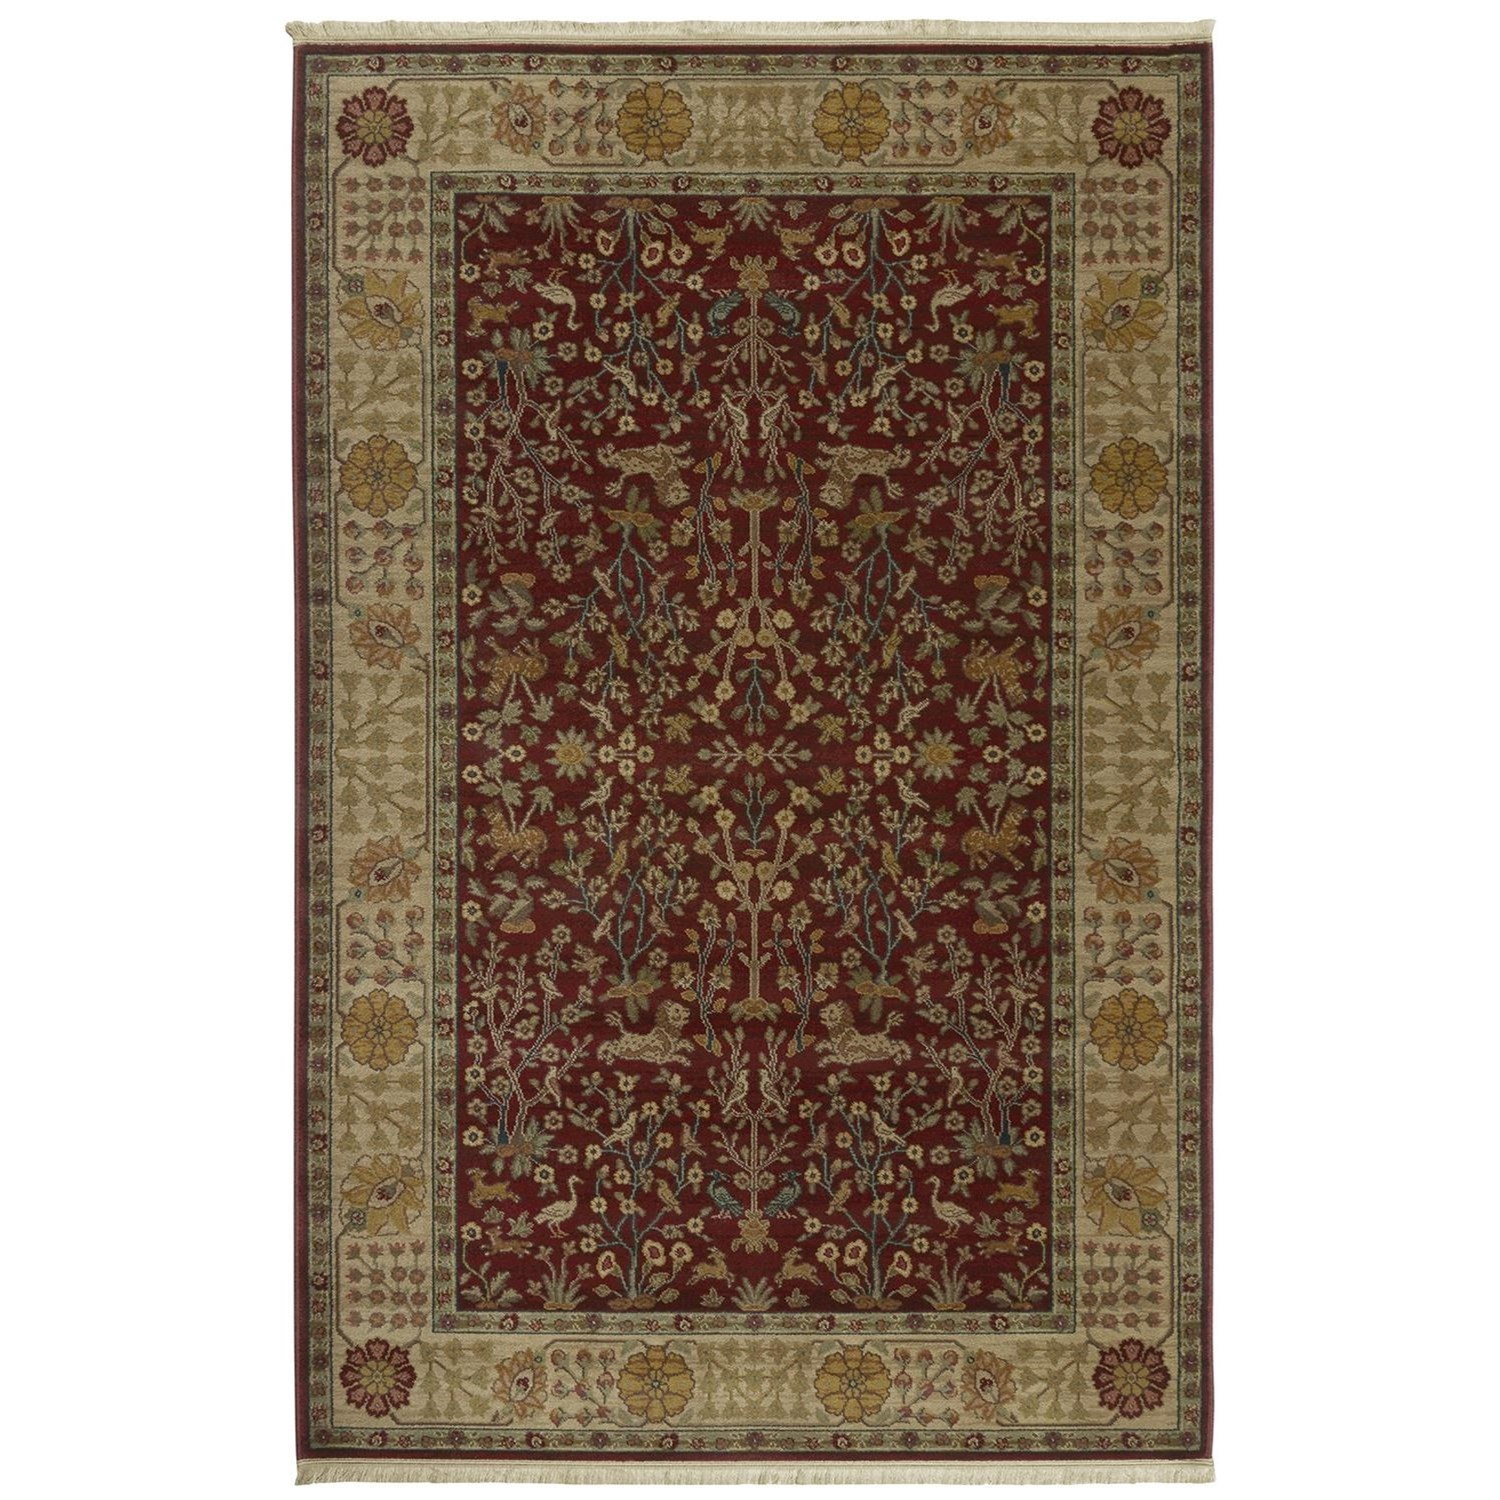 Antique Legends 8'8x12' Emperor's Hunt Rug by Karastan Rugs at Darvin Furniture